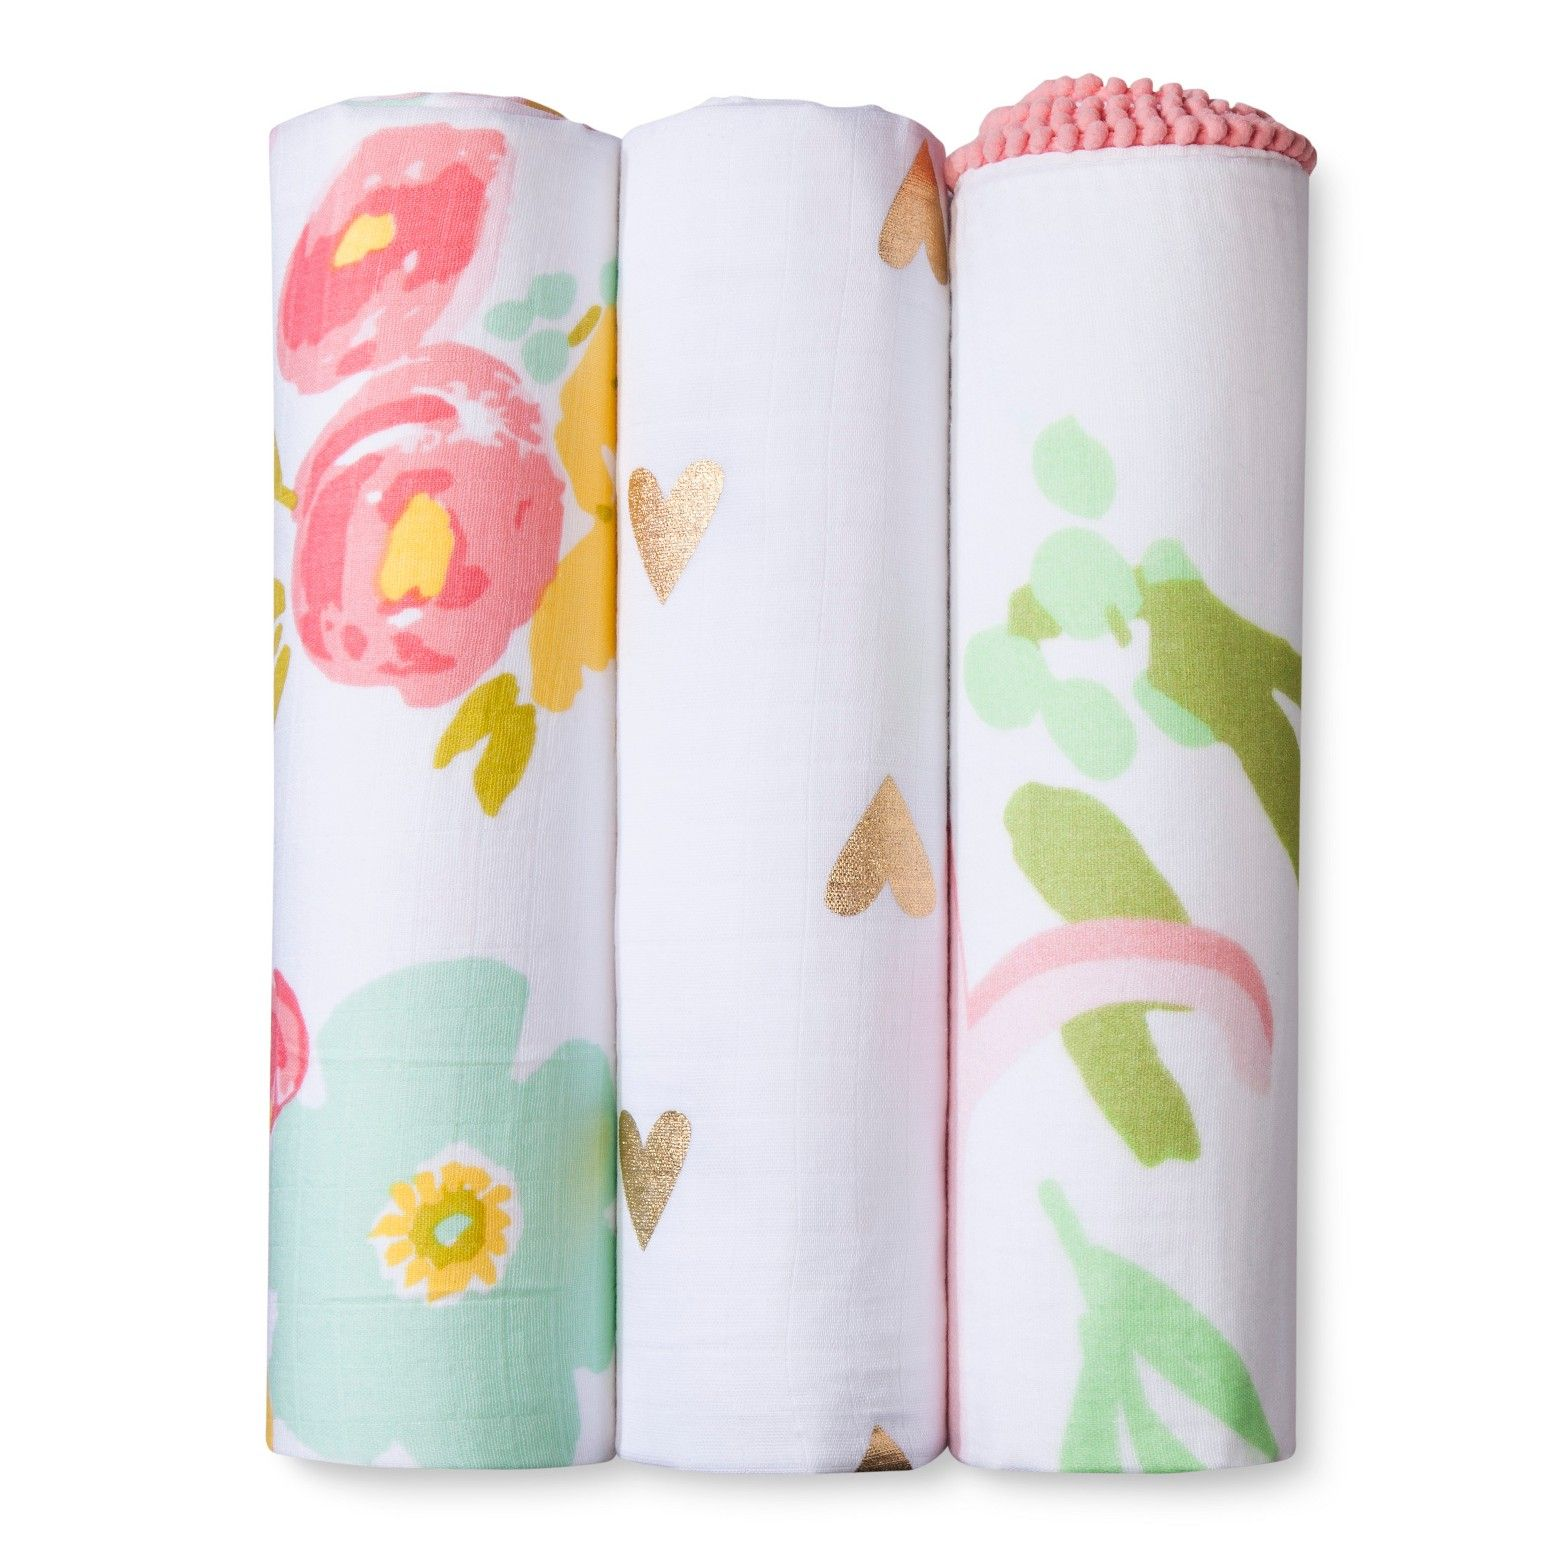 Swaddle Blankets Target Adorable Muslin Swaddle Blankets Floral 3Pk  Cloud Island™  Pink  Muslin Design Ideas